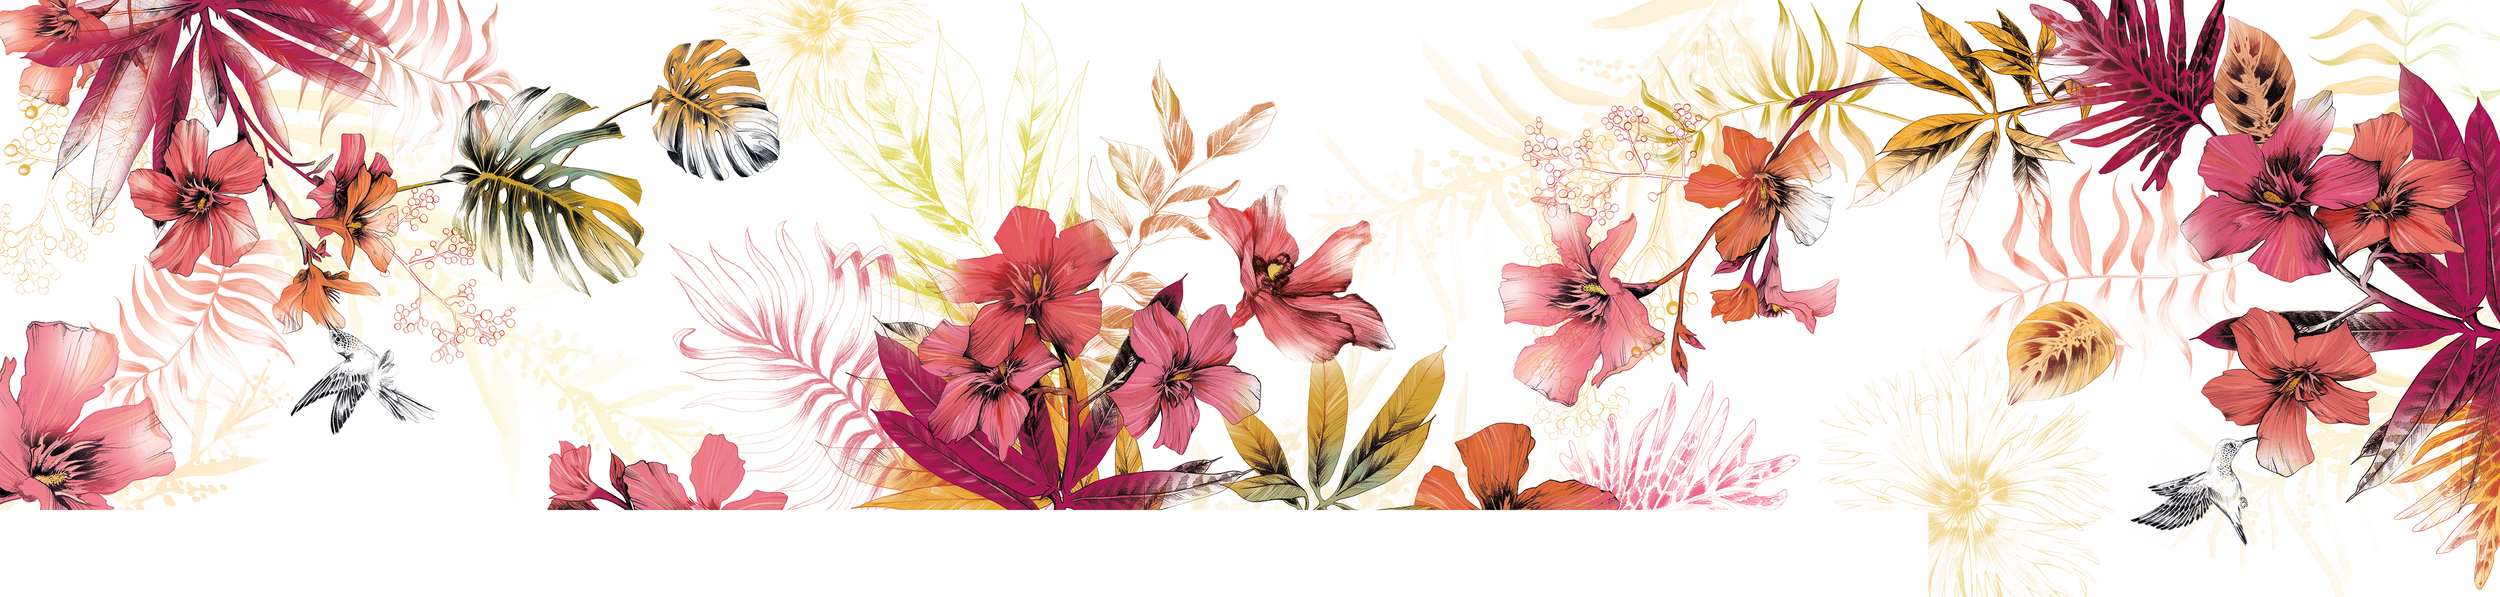 Fig. 1. Reception Mural: 10 meters long filled with Oleander, tropical leaves, berries and hummingbirds